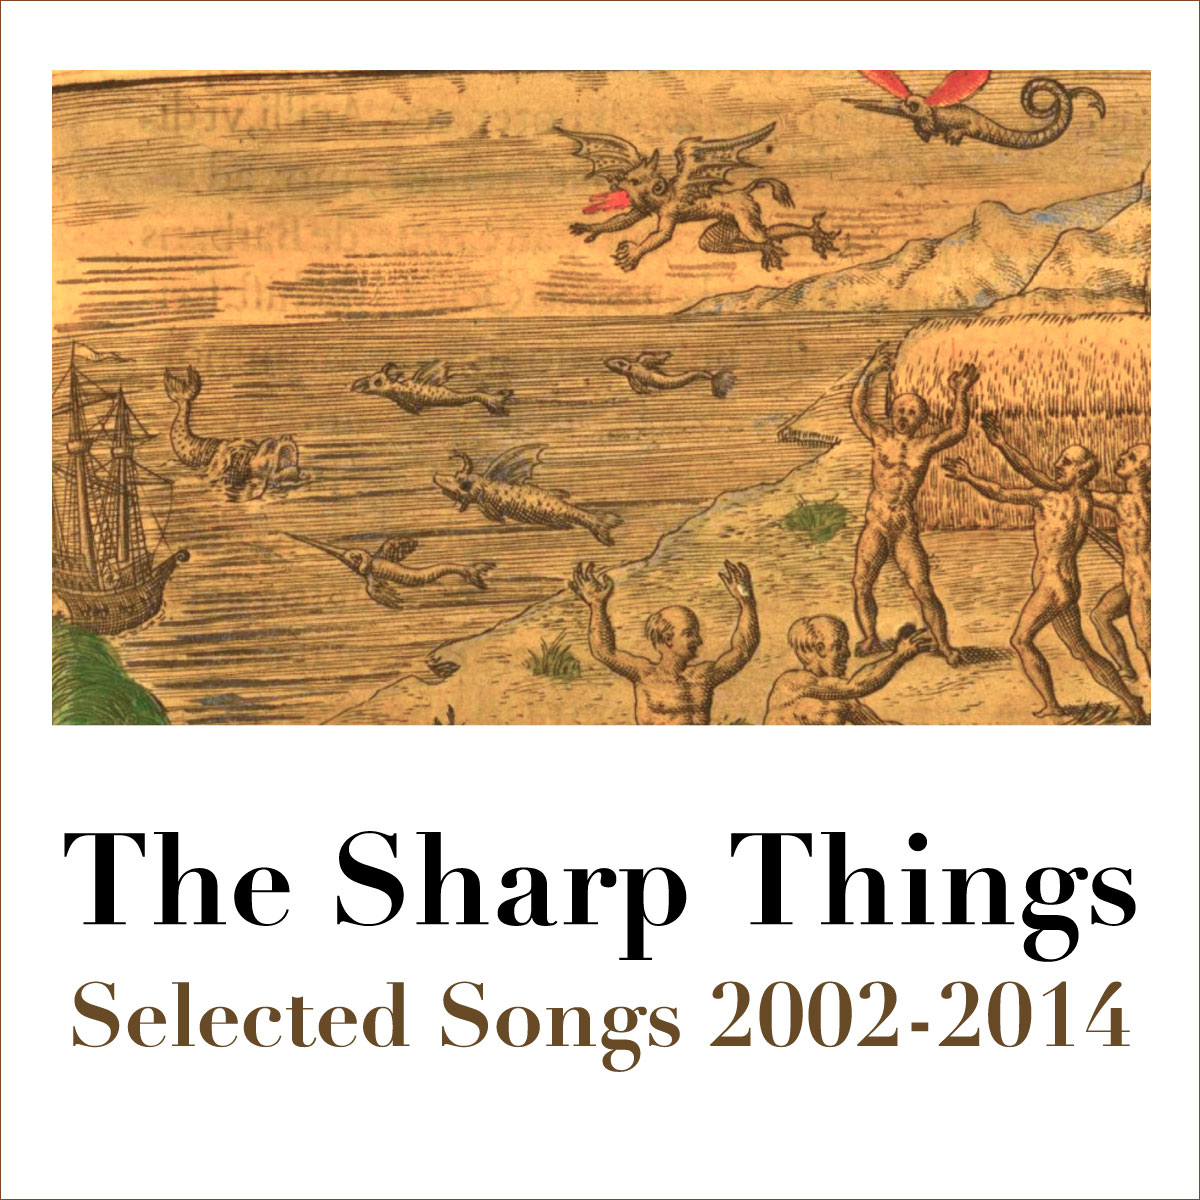 The Sharp Things, Selected Songs 2002-2014